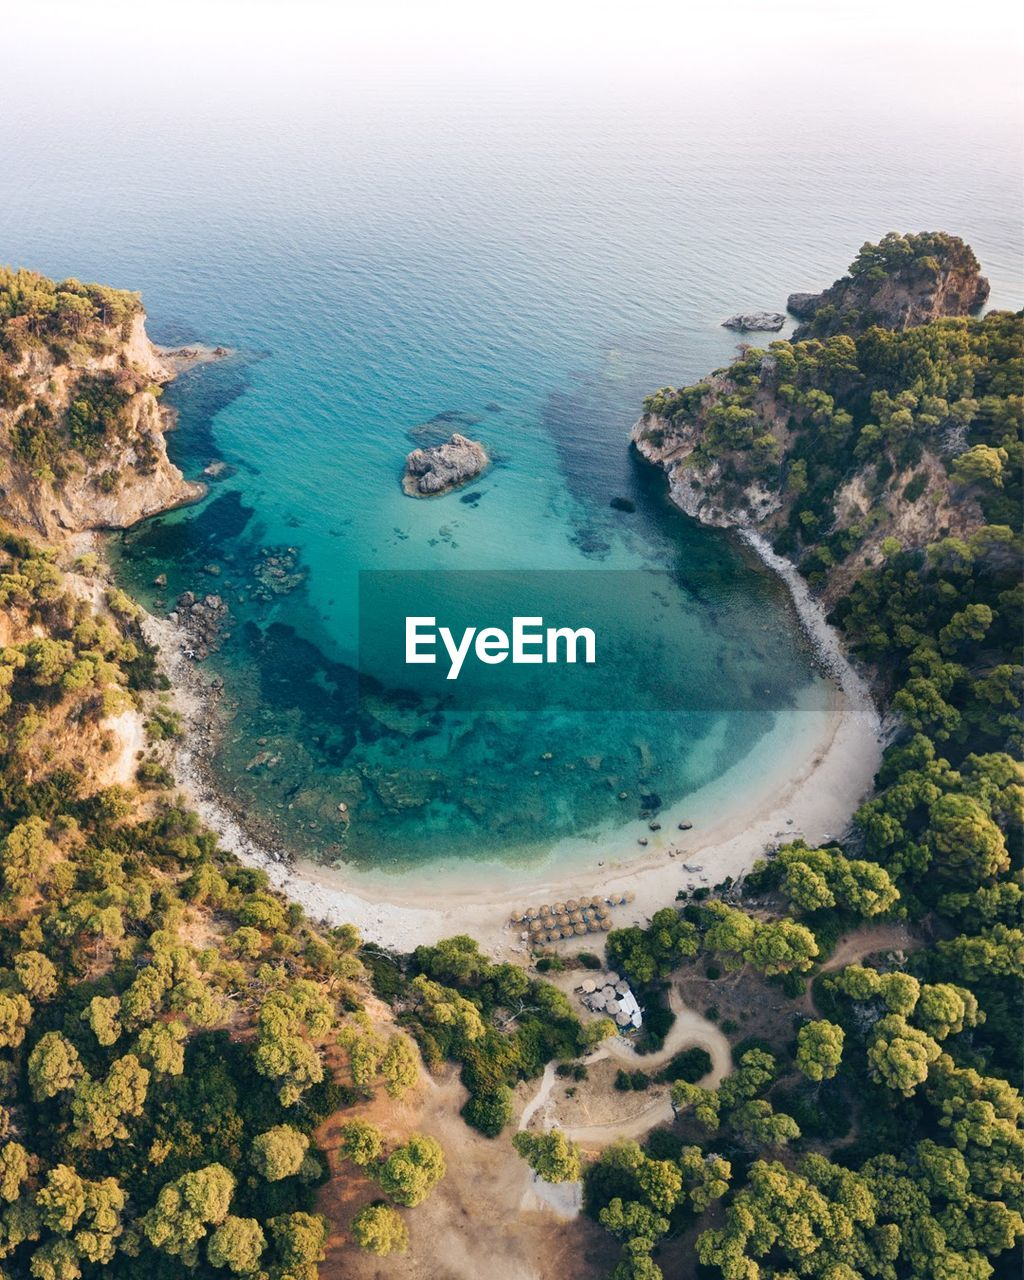 sea, water, scenics, beauty in nature, nature, beach, tranquility, tranquil scene, high angle view, idyllic, no people, blue, aerial view, landscape, day, outdoors, tree, horizon over water, sky